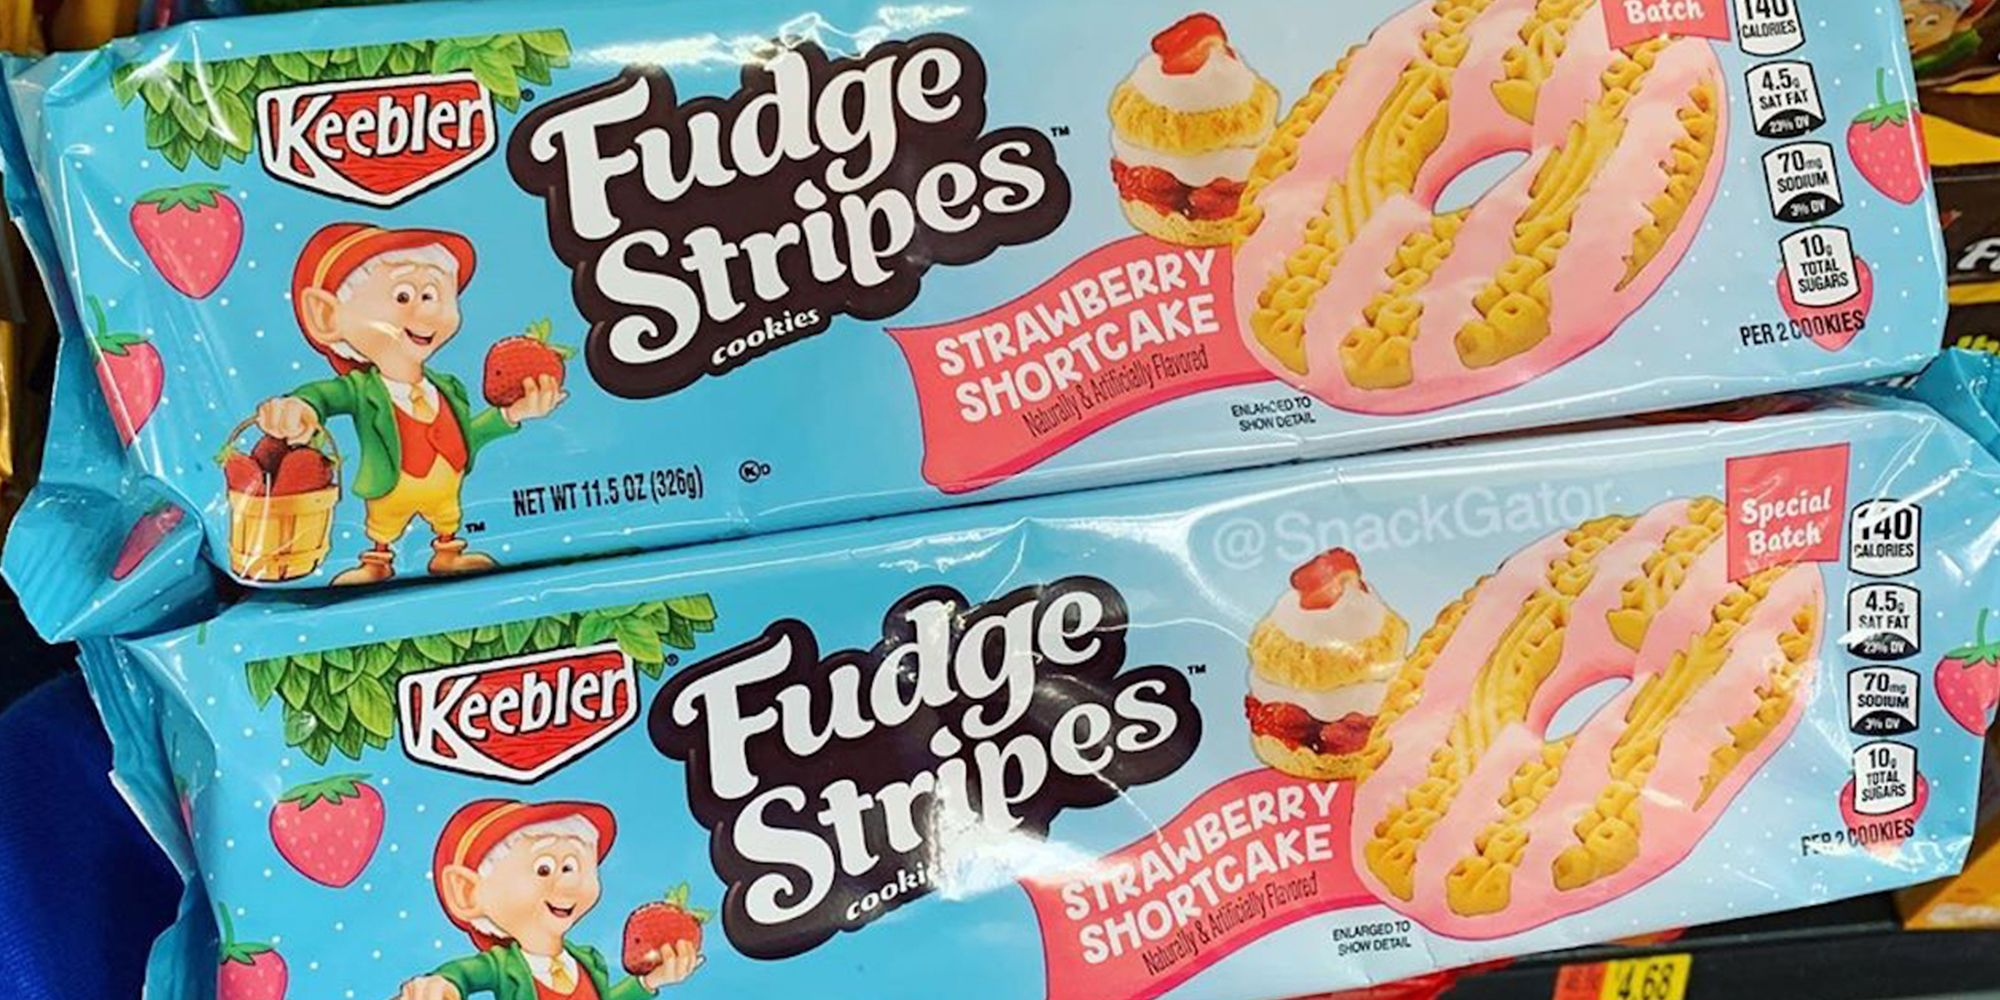 Keebler Just Released Fudge Stripes Strawberry Shortcake Cookies And They're Perfect For Dessert